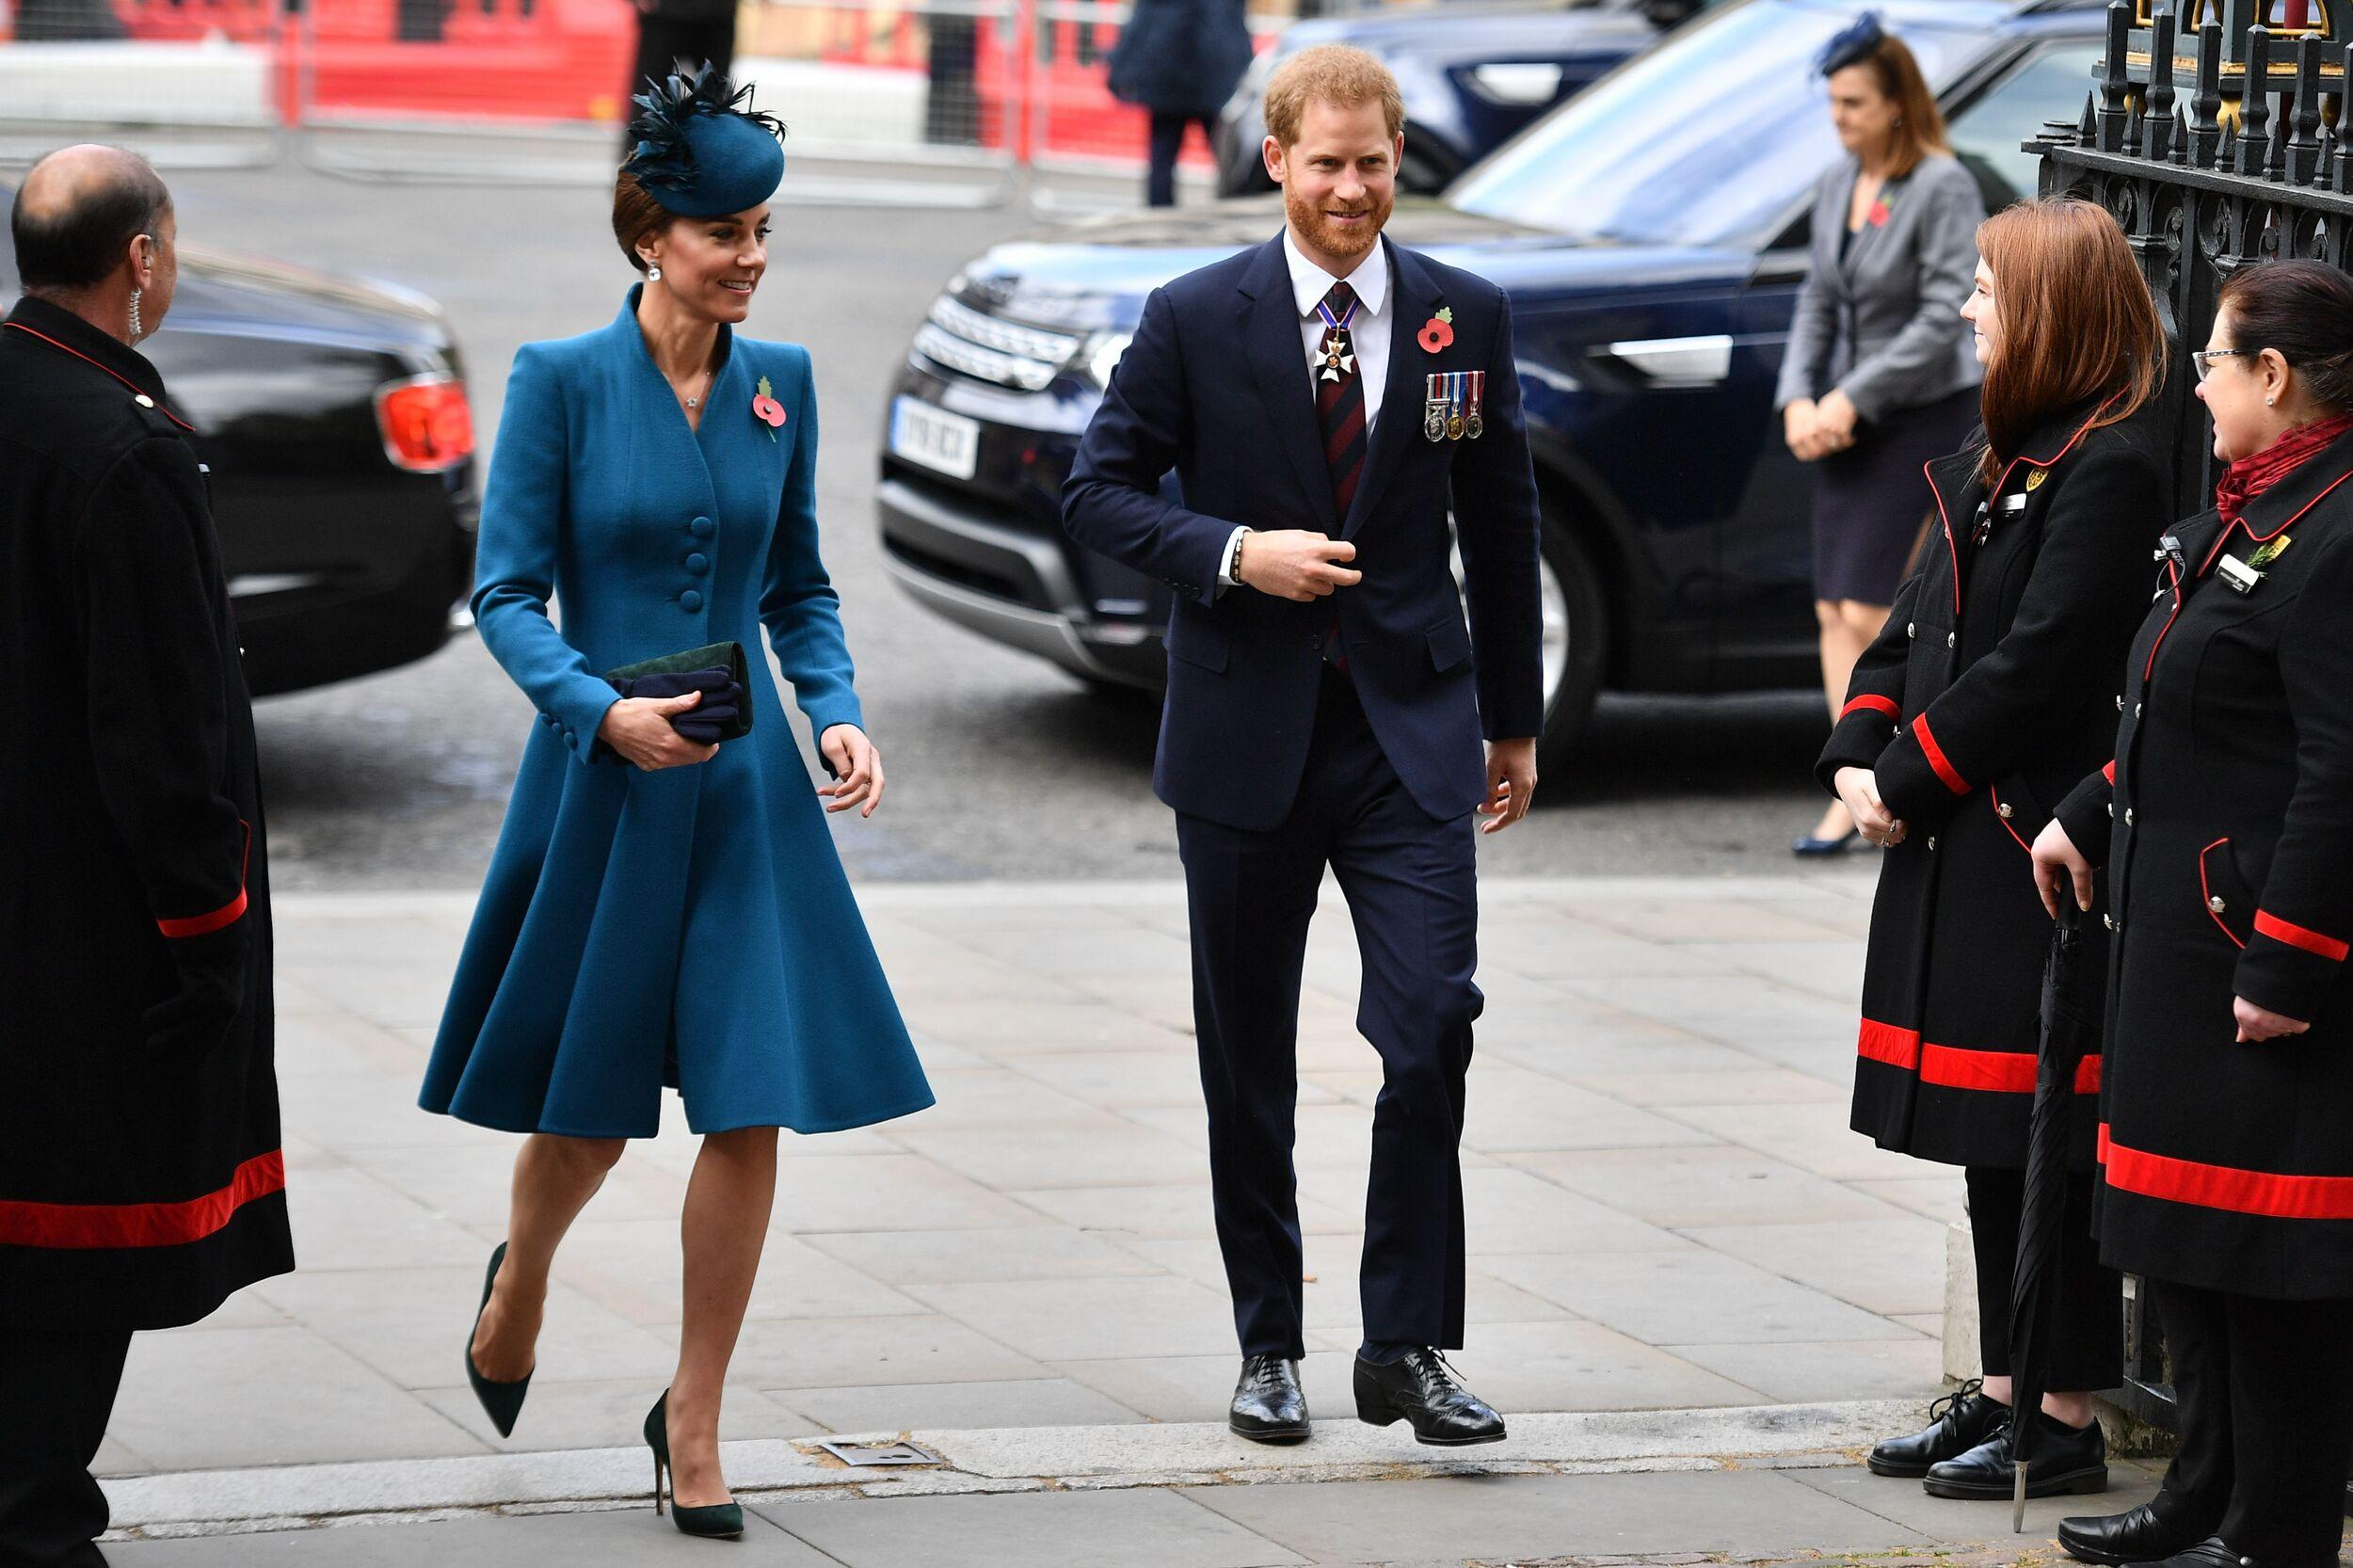 Britain's Catherine, Duchess of Cambridge, (L) and Britain's Prince Harry, Duke of Sussex, (R) arrive to attend a service of commemoration and thanksgiving to mark Anzac Day in Westminster Abbey in London on April 25, 2019. - Anzac Day marks the anniversary of the first major military action fought by Australian and New Zealand forces during the First World War. The Australian and New Zealand Army Corps (ANZAC) landed at Gallipoli in Turkey during World War I. (Photo by Daniel LEAL-OLIVAS / AFP)        (Photo credit should read DANIEL LEAL-OLIVAS/AFP/Getty Images)